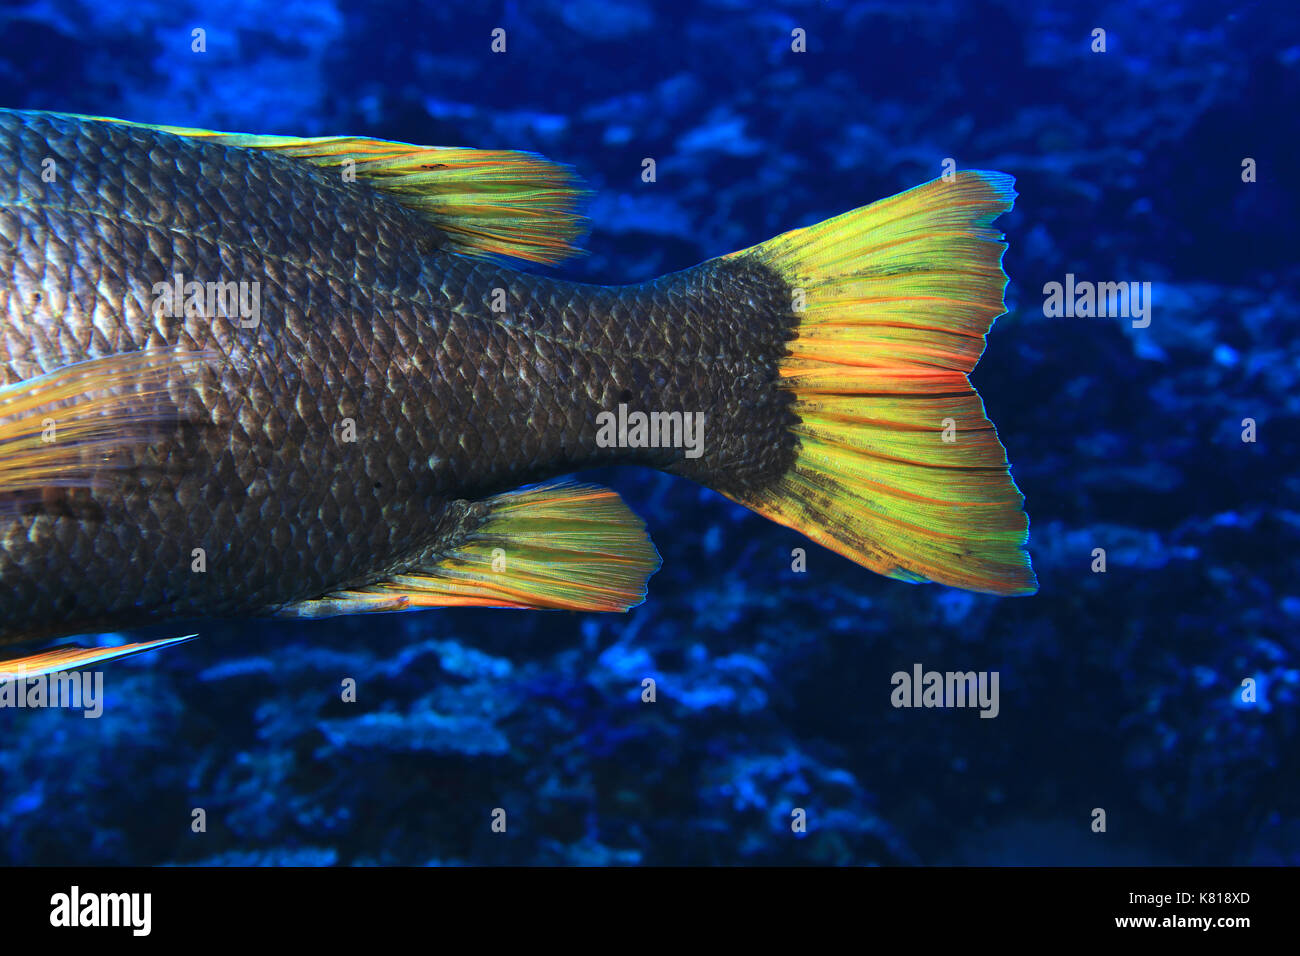 Tail of Orange-spotted emperor fish (Lethrinus erythracanthus) underwater in the tropical indian ocean - Stock Image